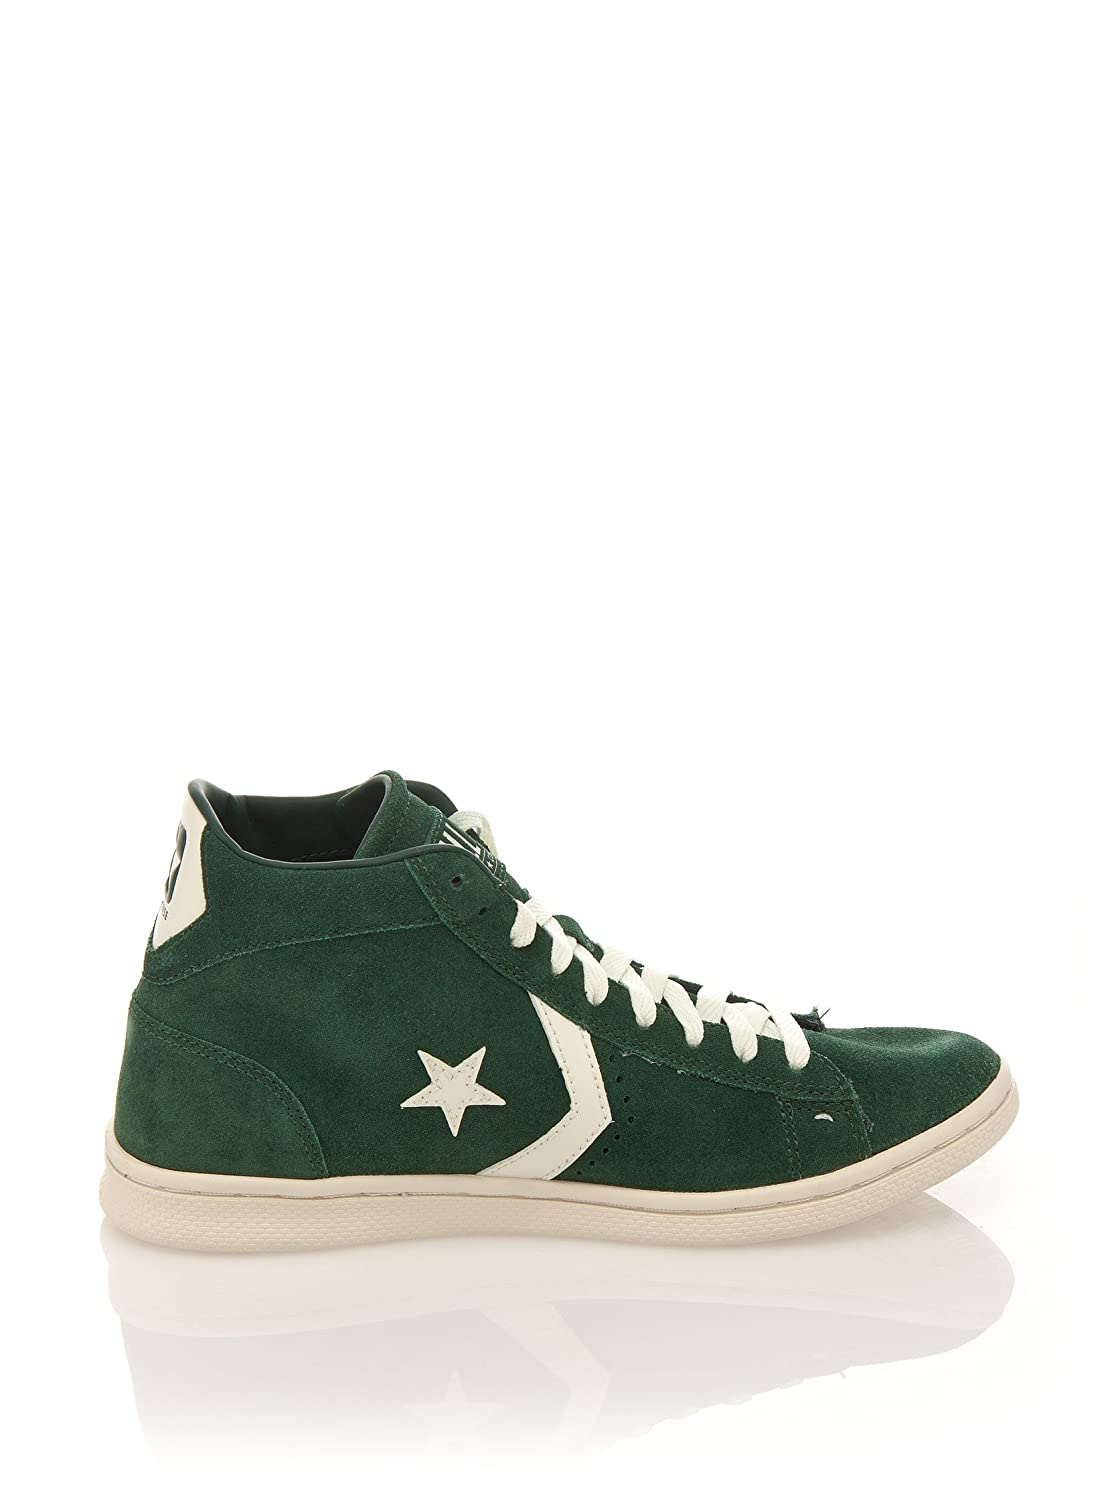 6191f617ae63 Converse Women s Sneakers Green Size  4  Amazon.co.uk  Shoes   Bags